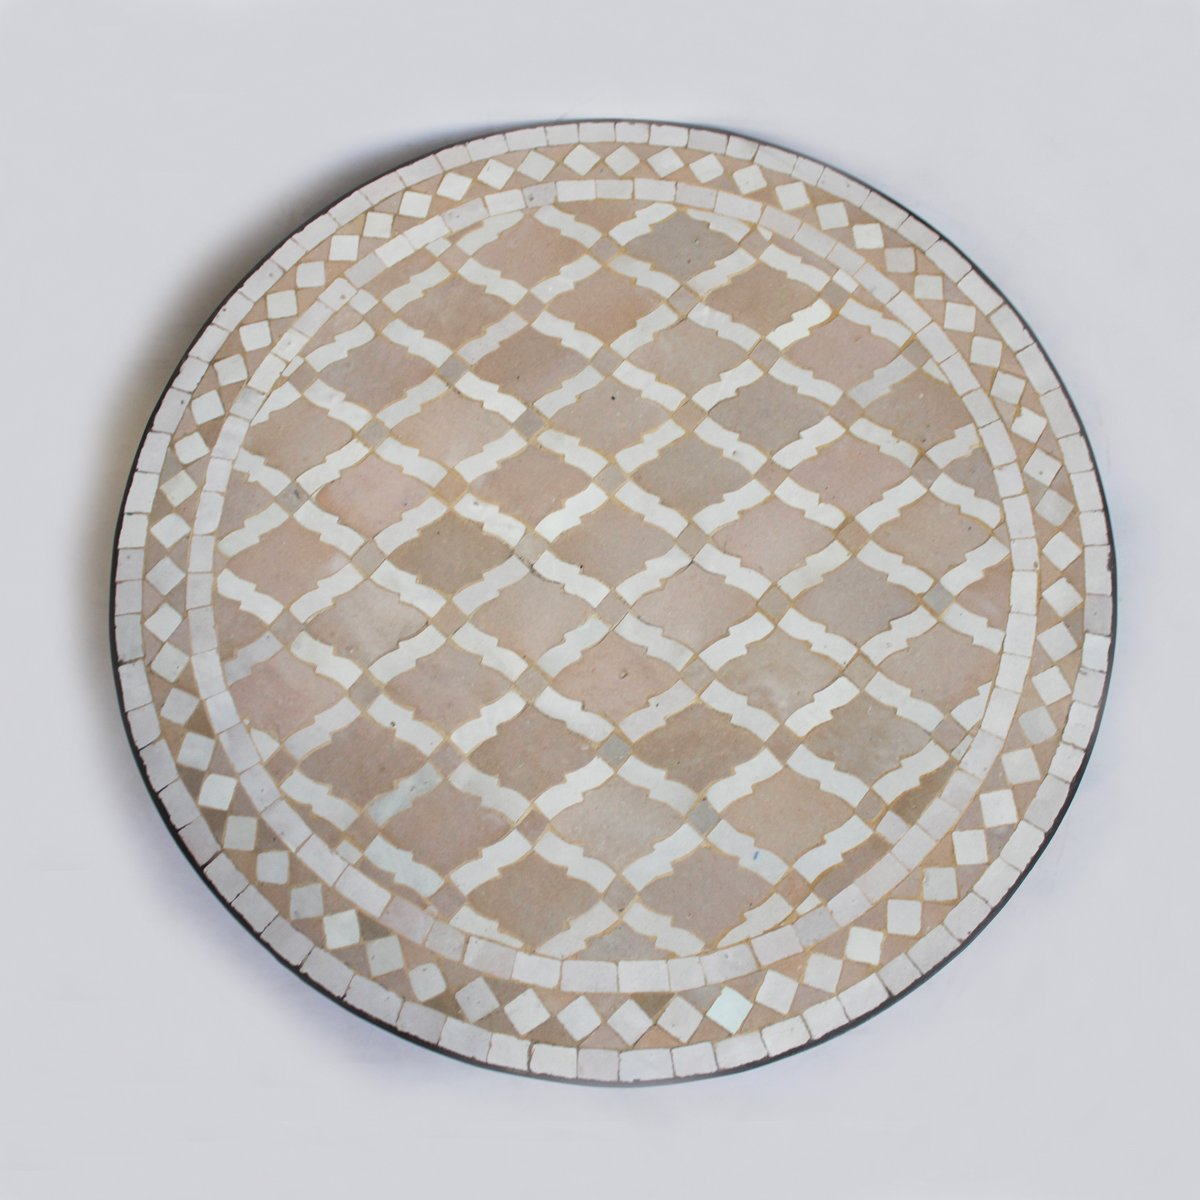 Round Mosaic Tile Side Table 24'' by Design MIX Furniture